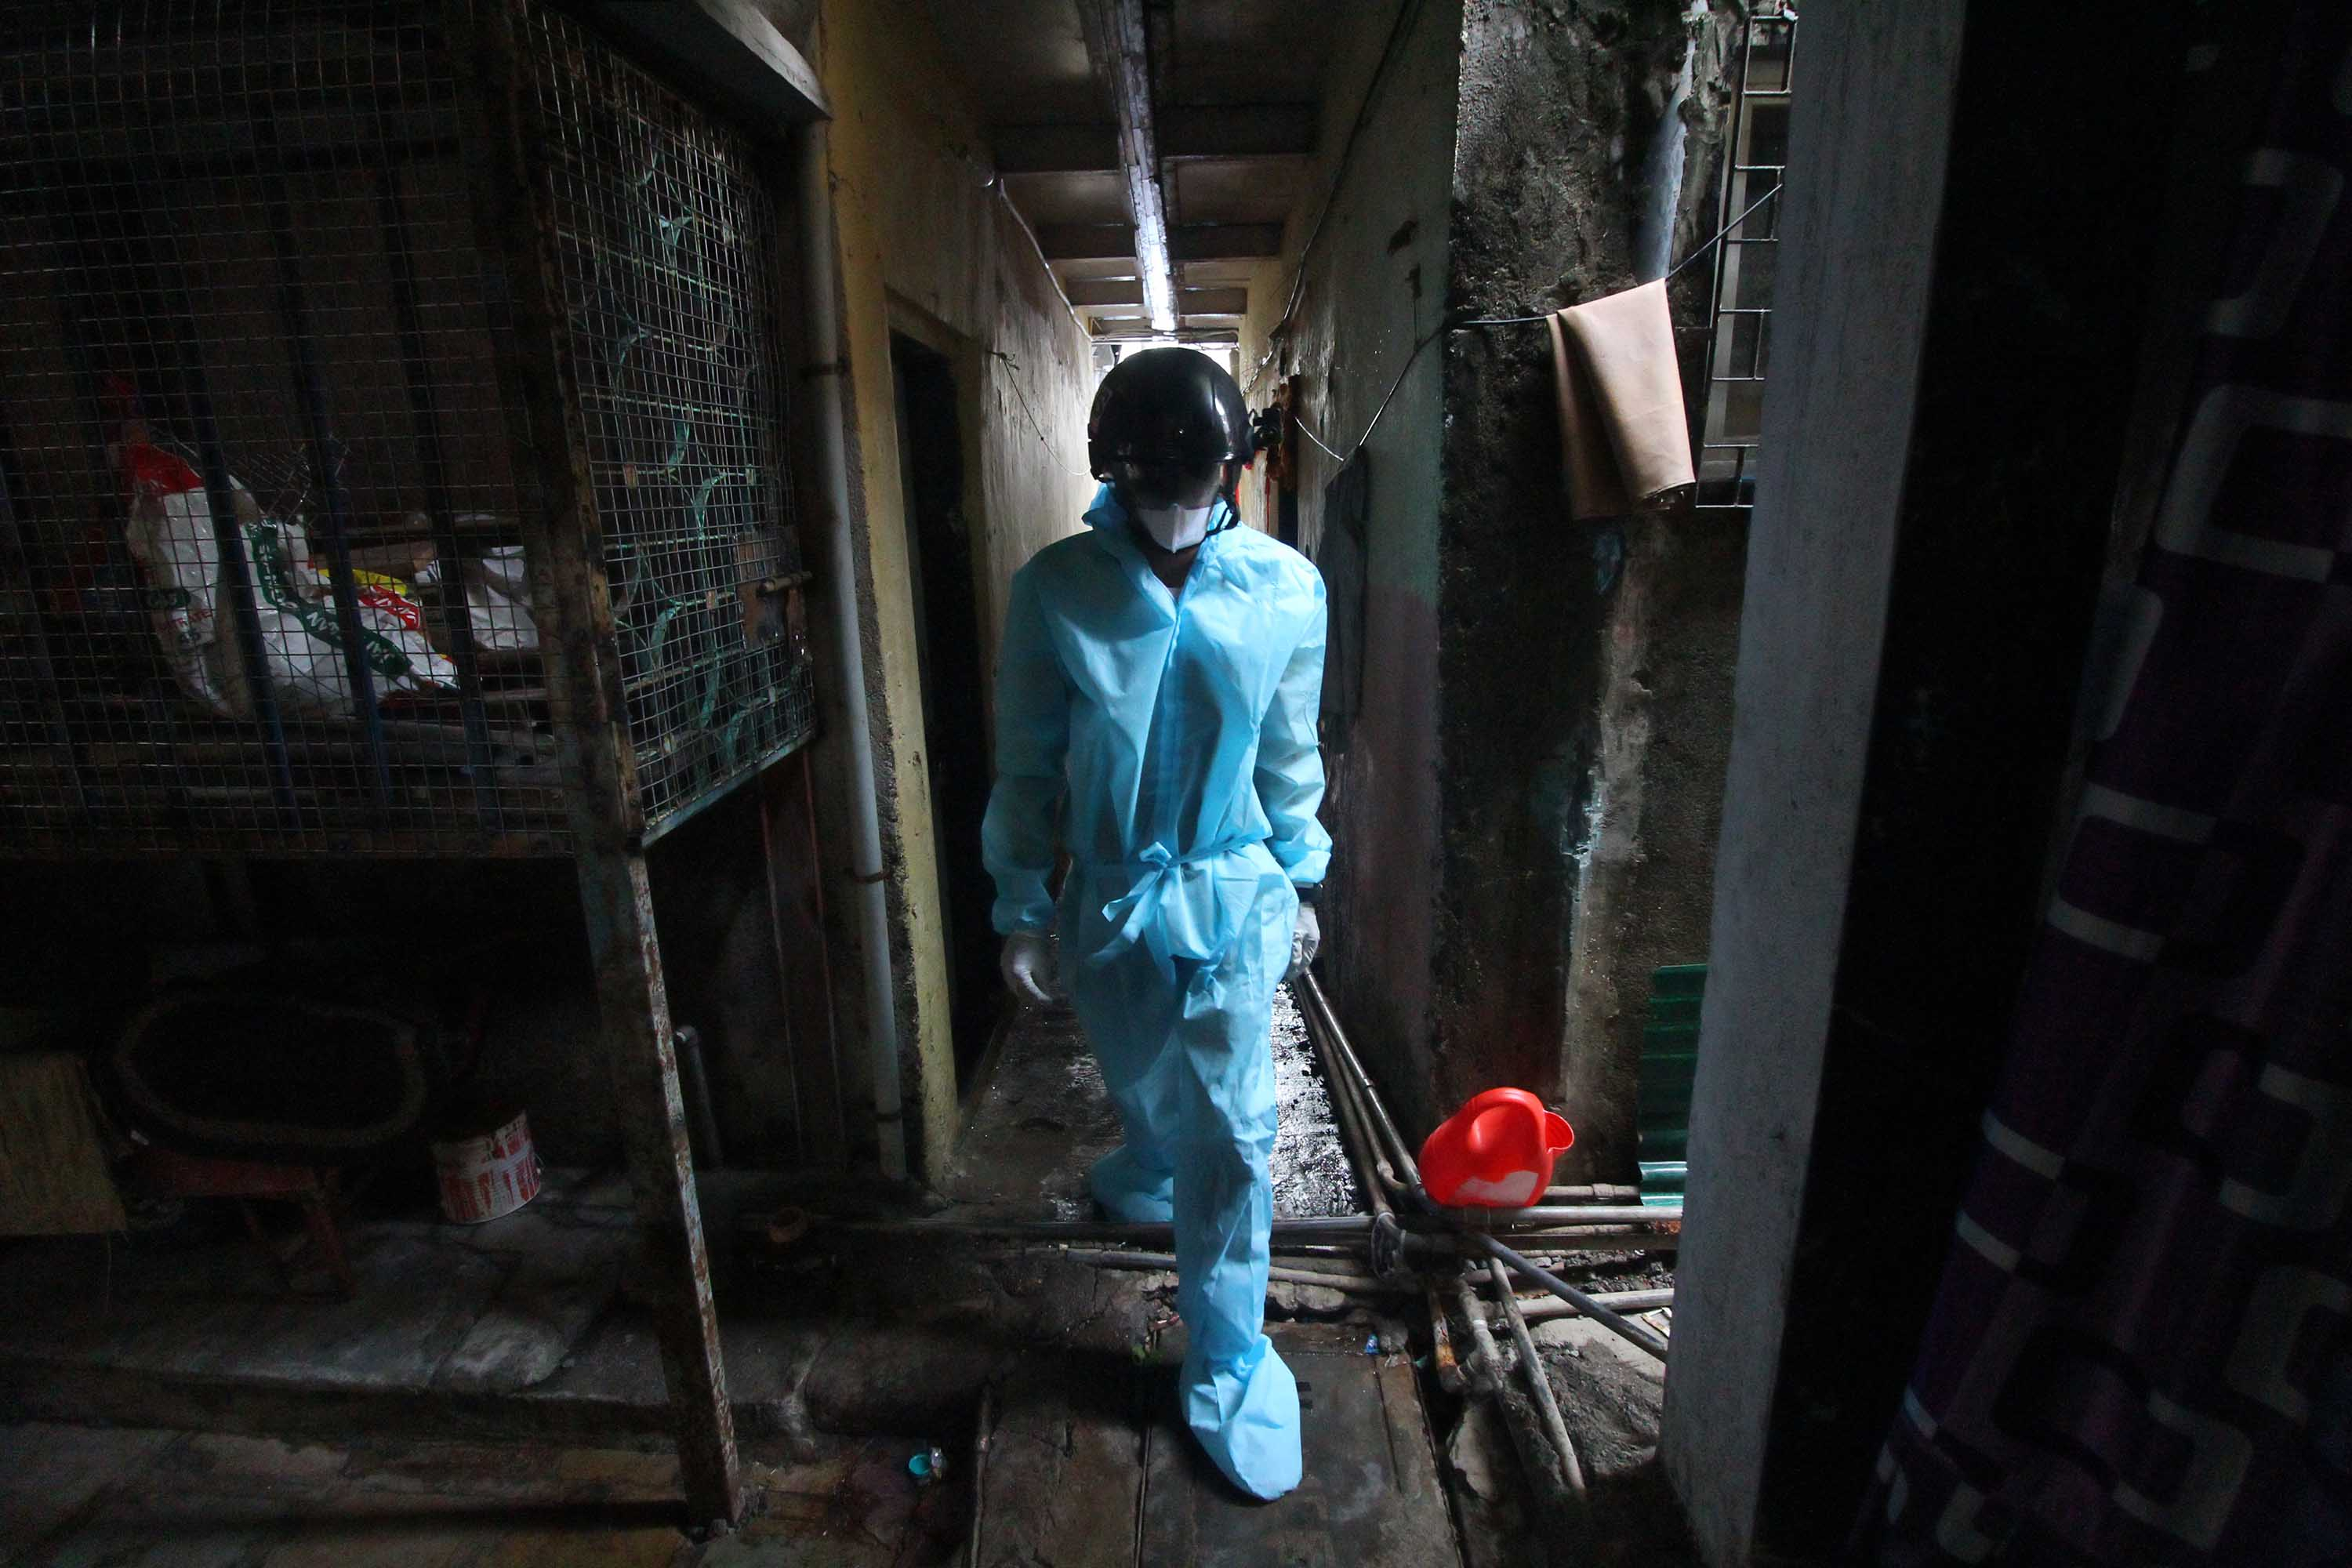 A health care worker walks through an alley of a Mumbai slum during a medical check-up on July 20.